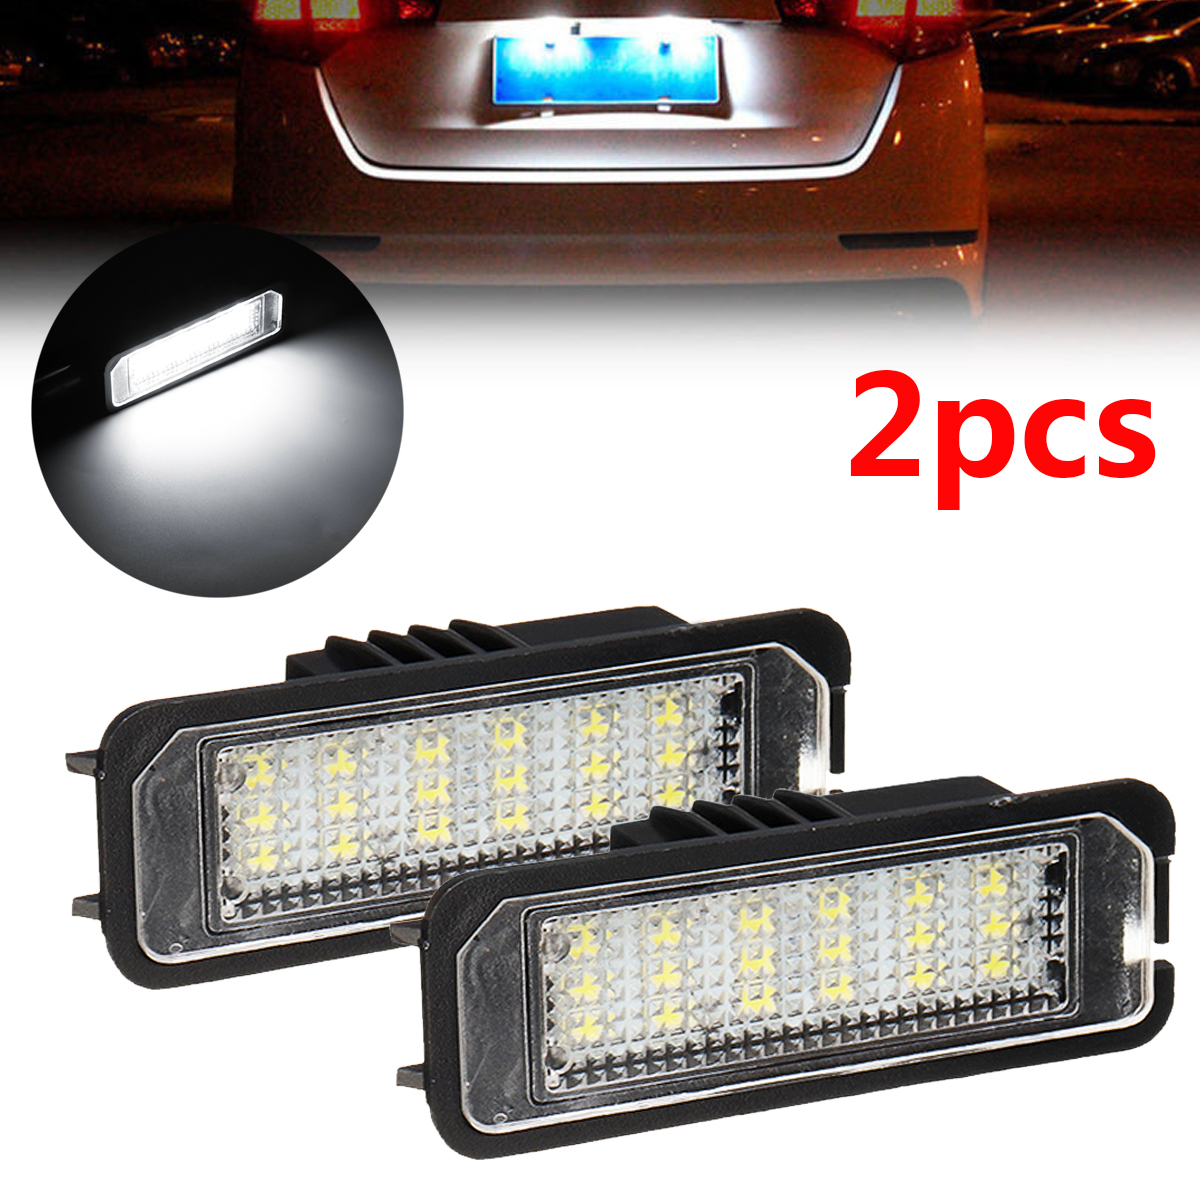 Autoleader 2pcs LED License Plate Light for VW Golf 4/ 5 Passat 3C Limo Lupo Polo 9N Universal Cable Auto Car Lights Signal Lamp high quality plastic and led bulbs 2pcs white error free 18 led license plate light lamp kit for vw golf eos passat polo phaeton